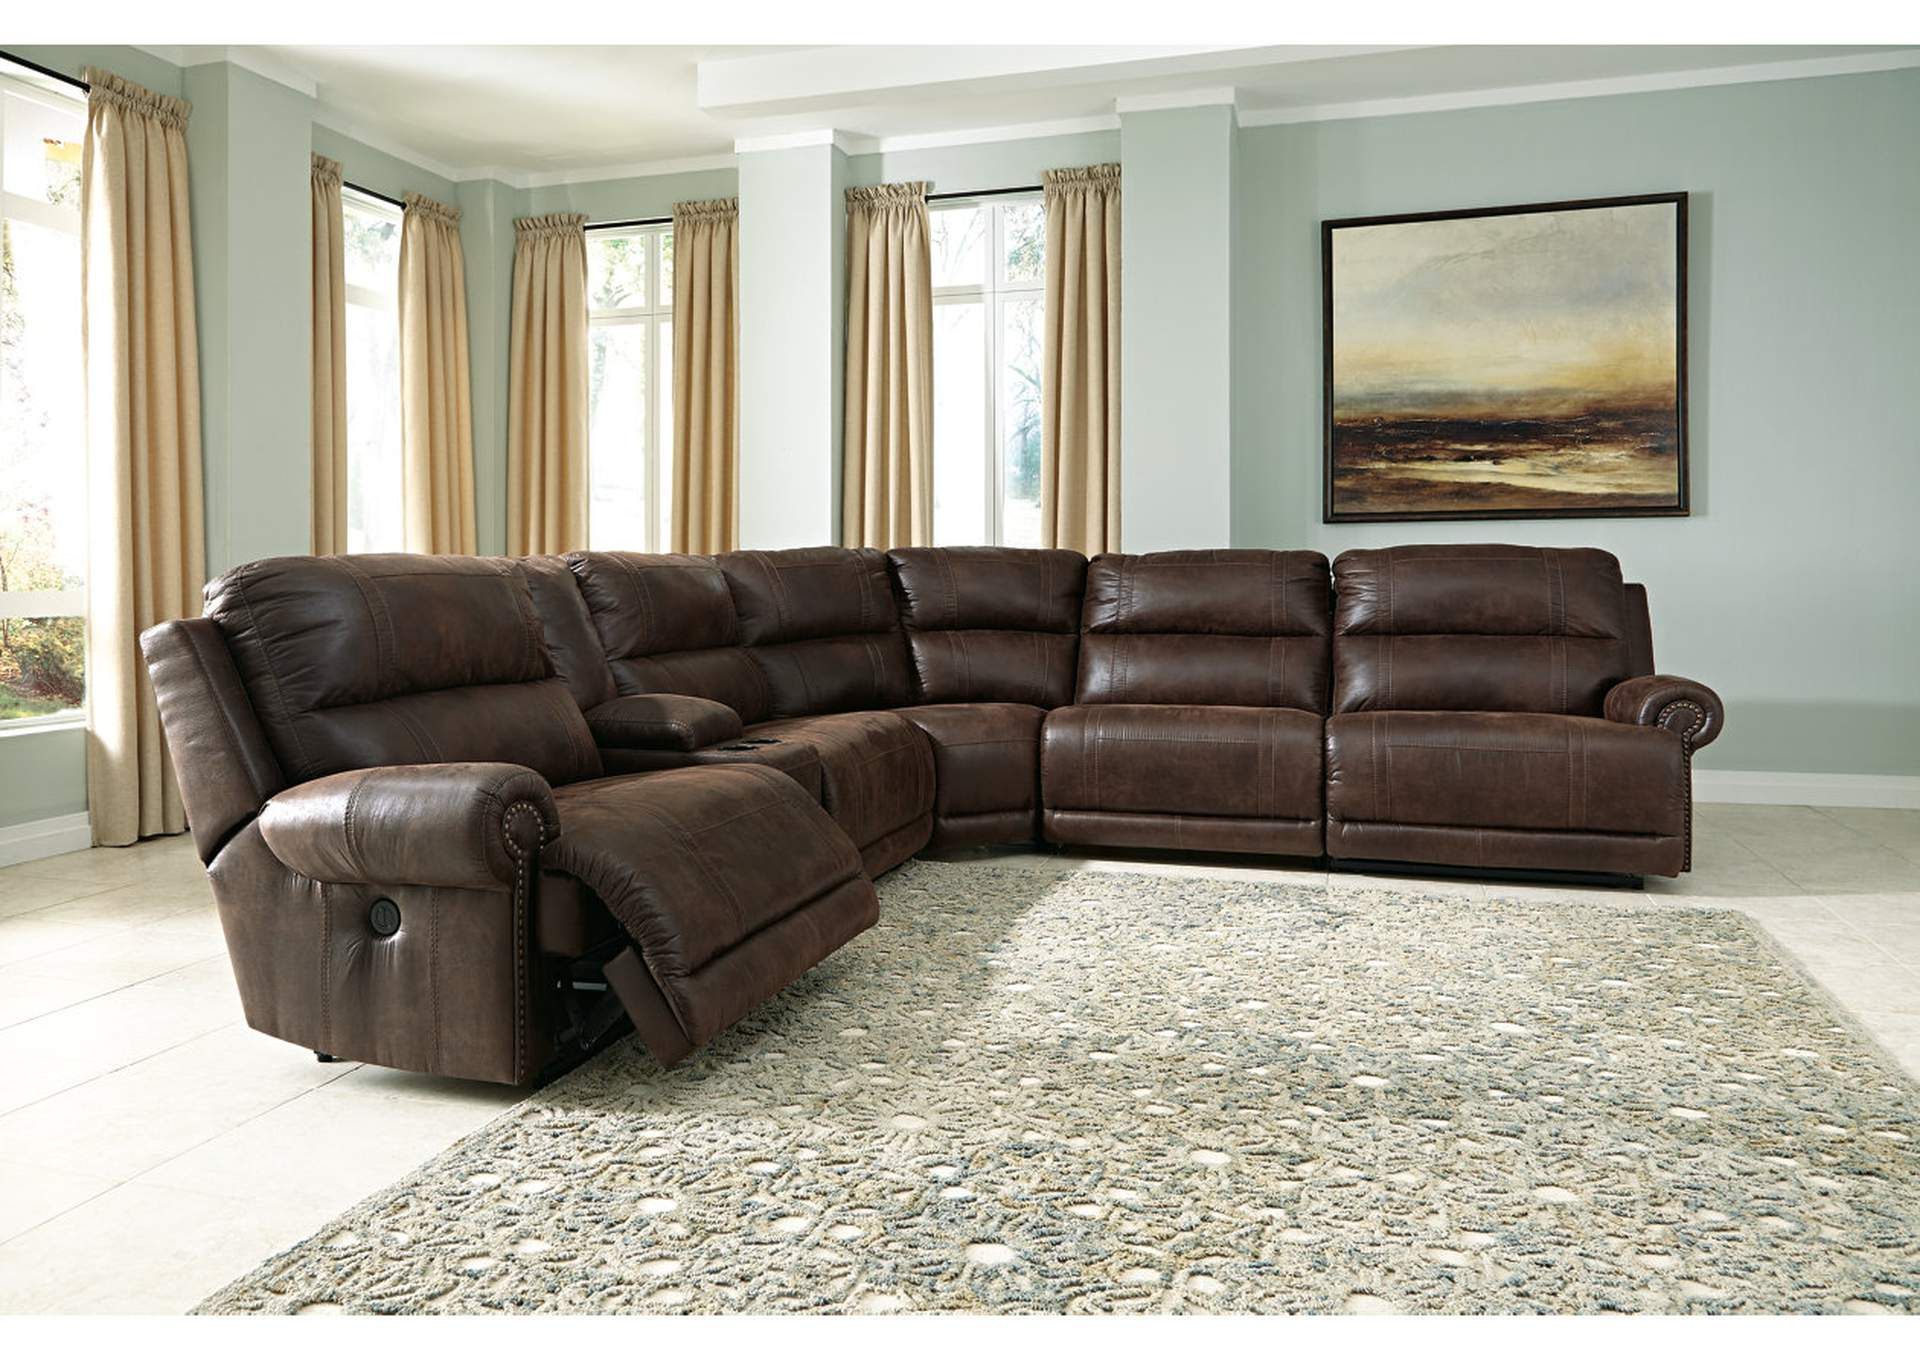 Luttrell Espresso Zero Wall Reclining Sectional w/ Storage Console,ABF Signature Design by Ashley